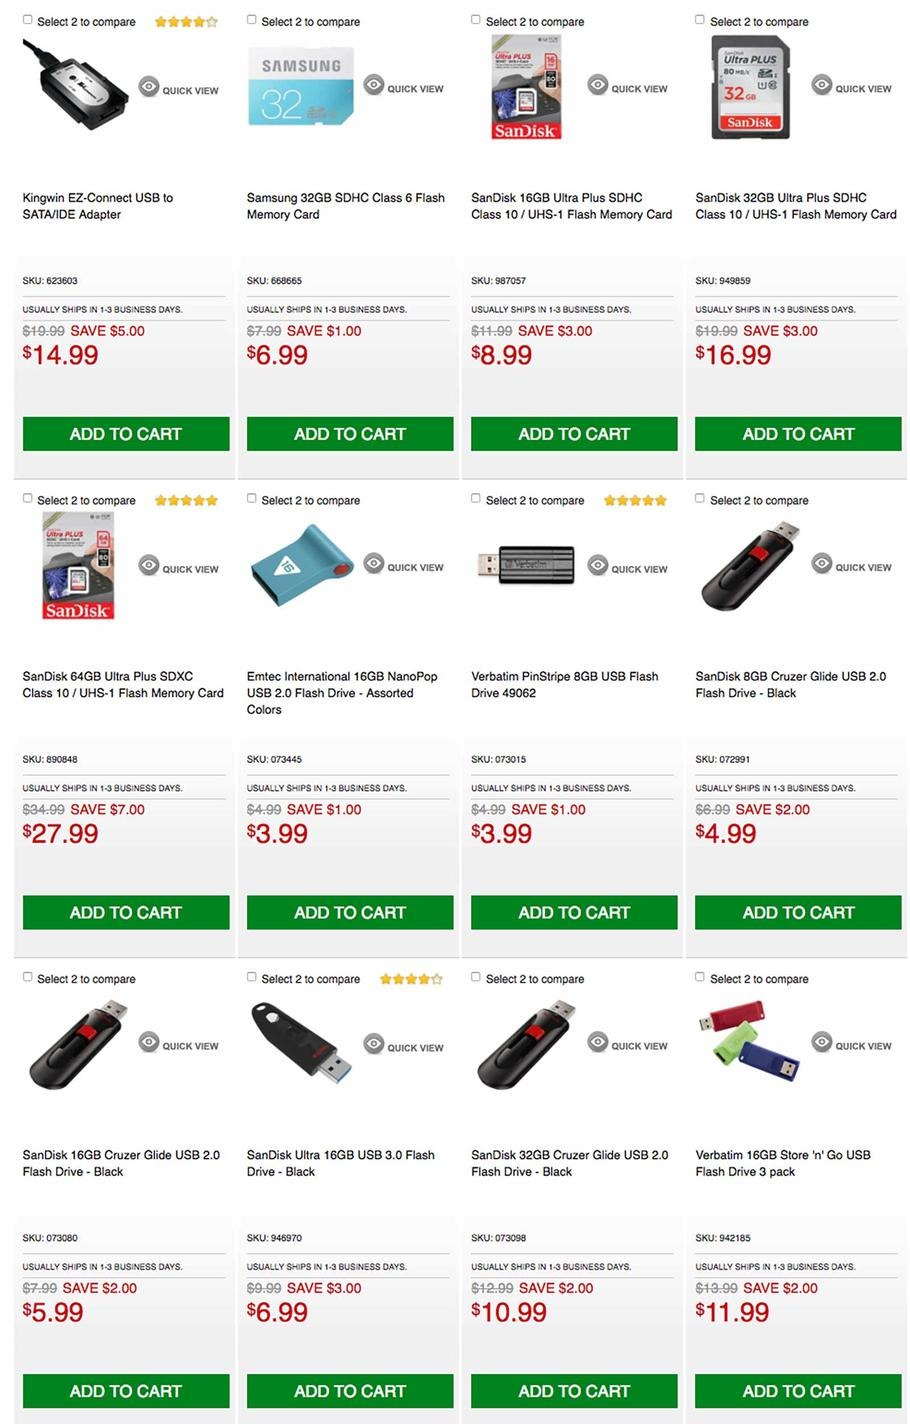 Micro center discount coupons